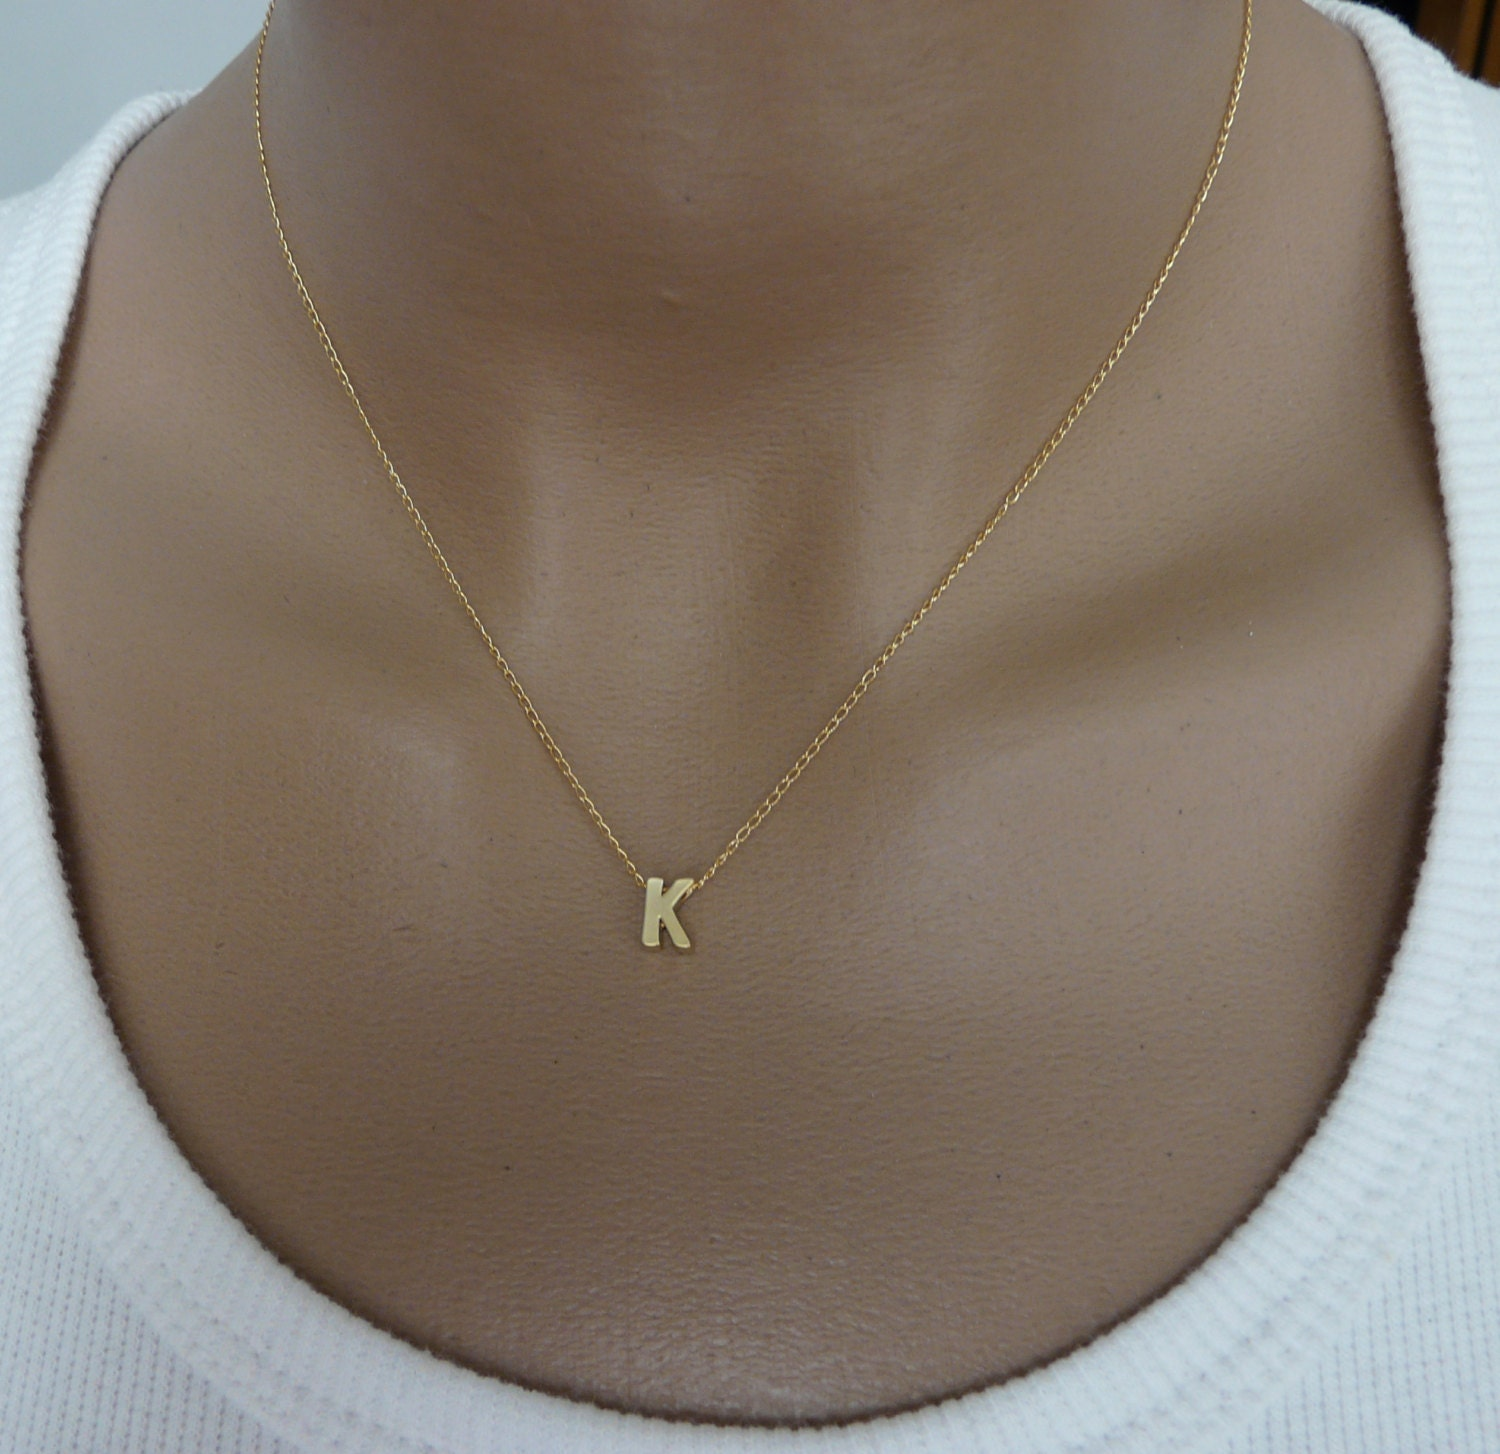 Choker Necklace Etsy: Initial Necklace Dainty Initial Necklace Initial Jewelry